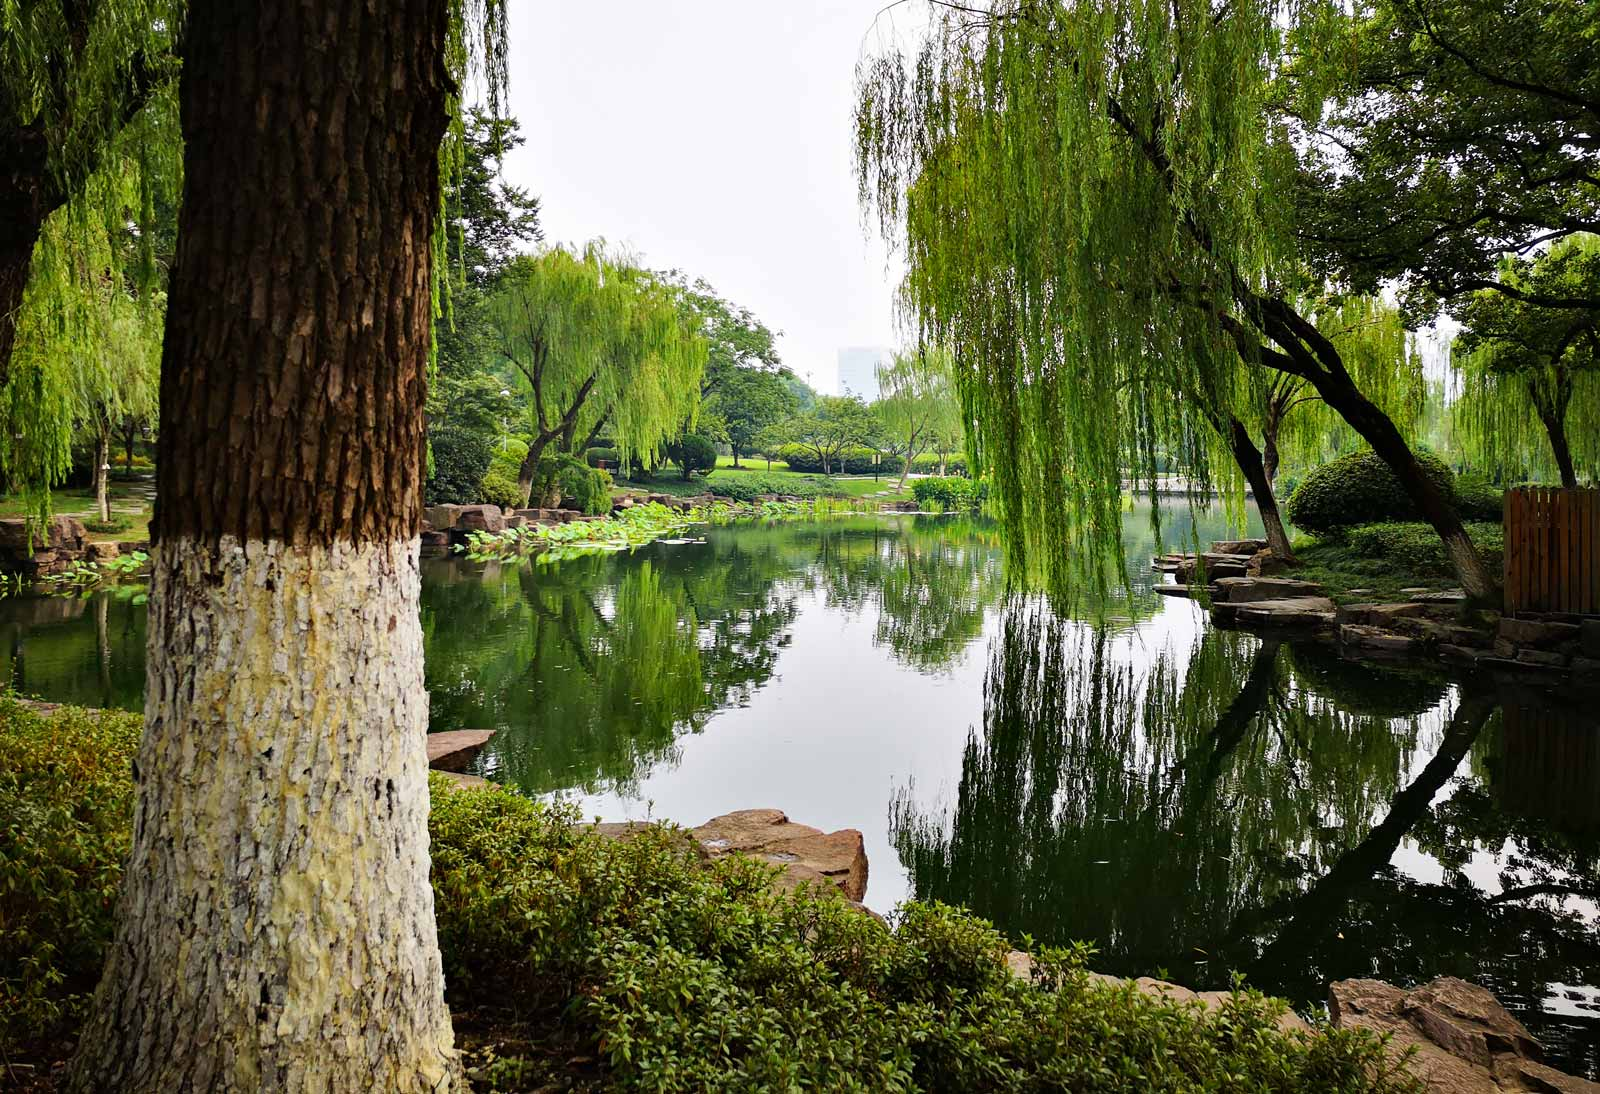 Ningbo Moon Lake Park